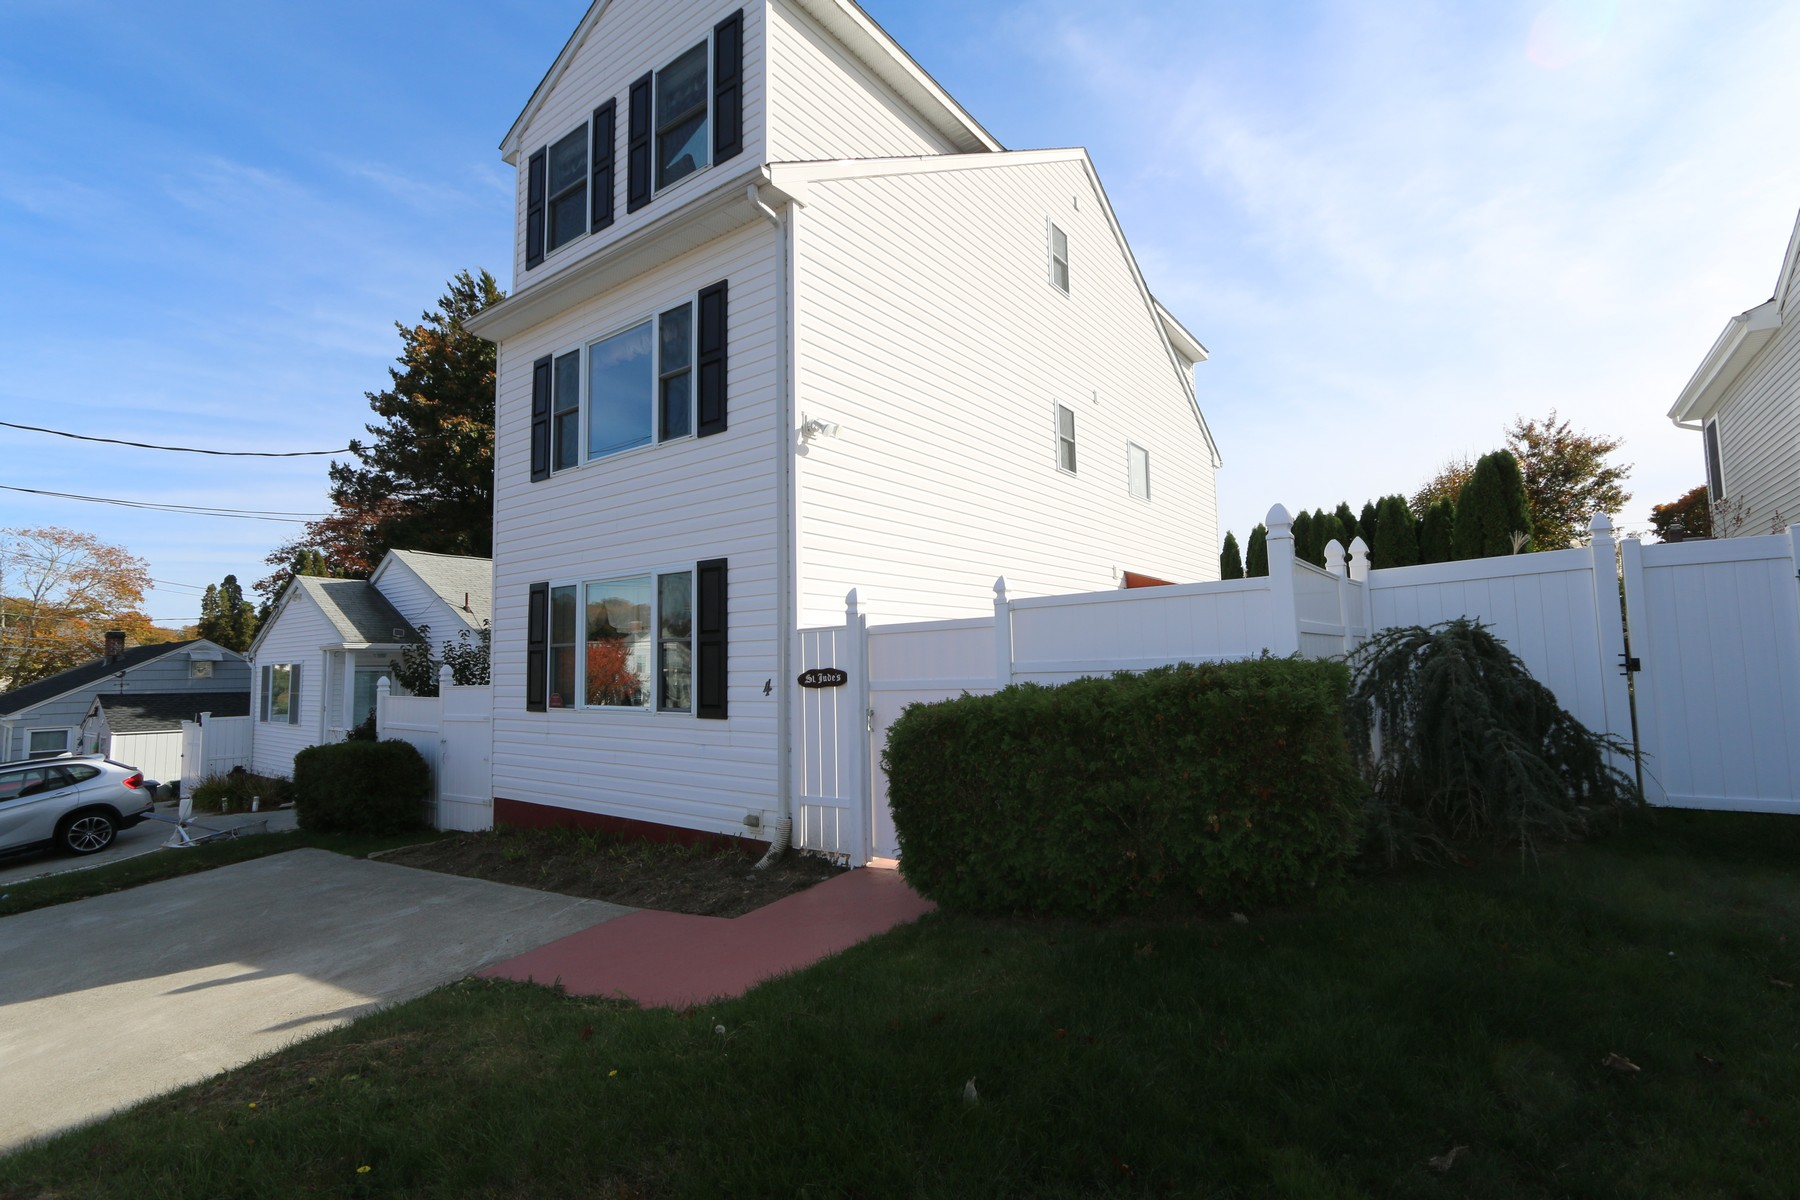 Single Family Home for Sale at Walk to Ocean Beach 4 Woodbine Street Waterford, Connecticut, 06385 United States